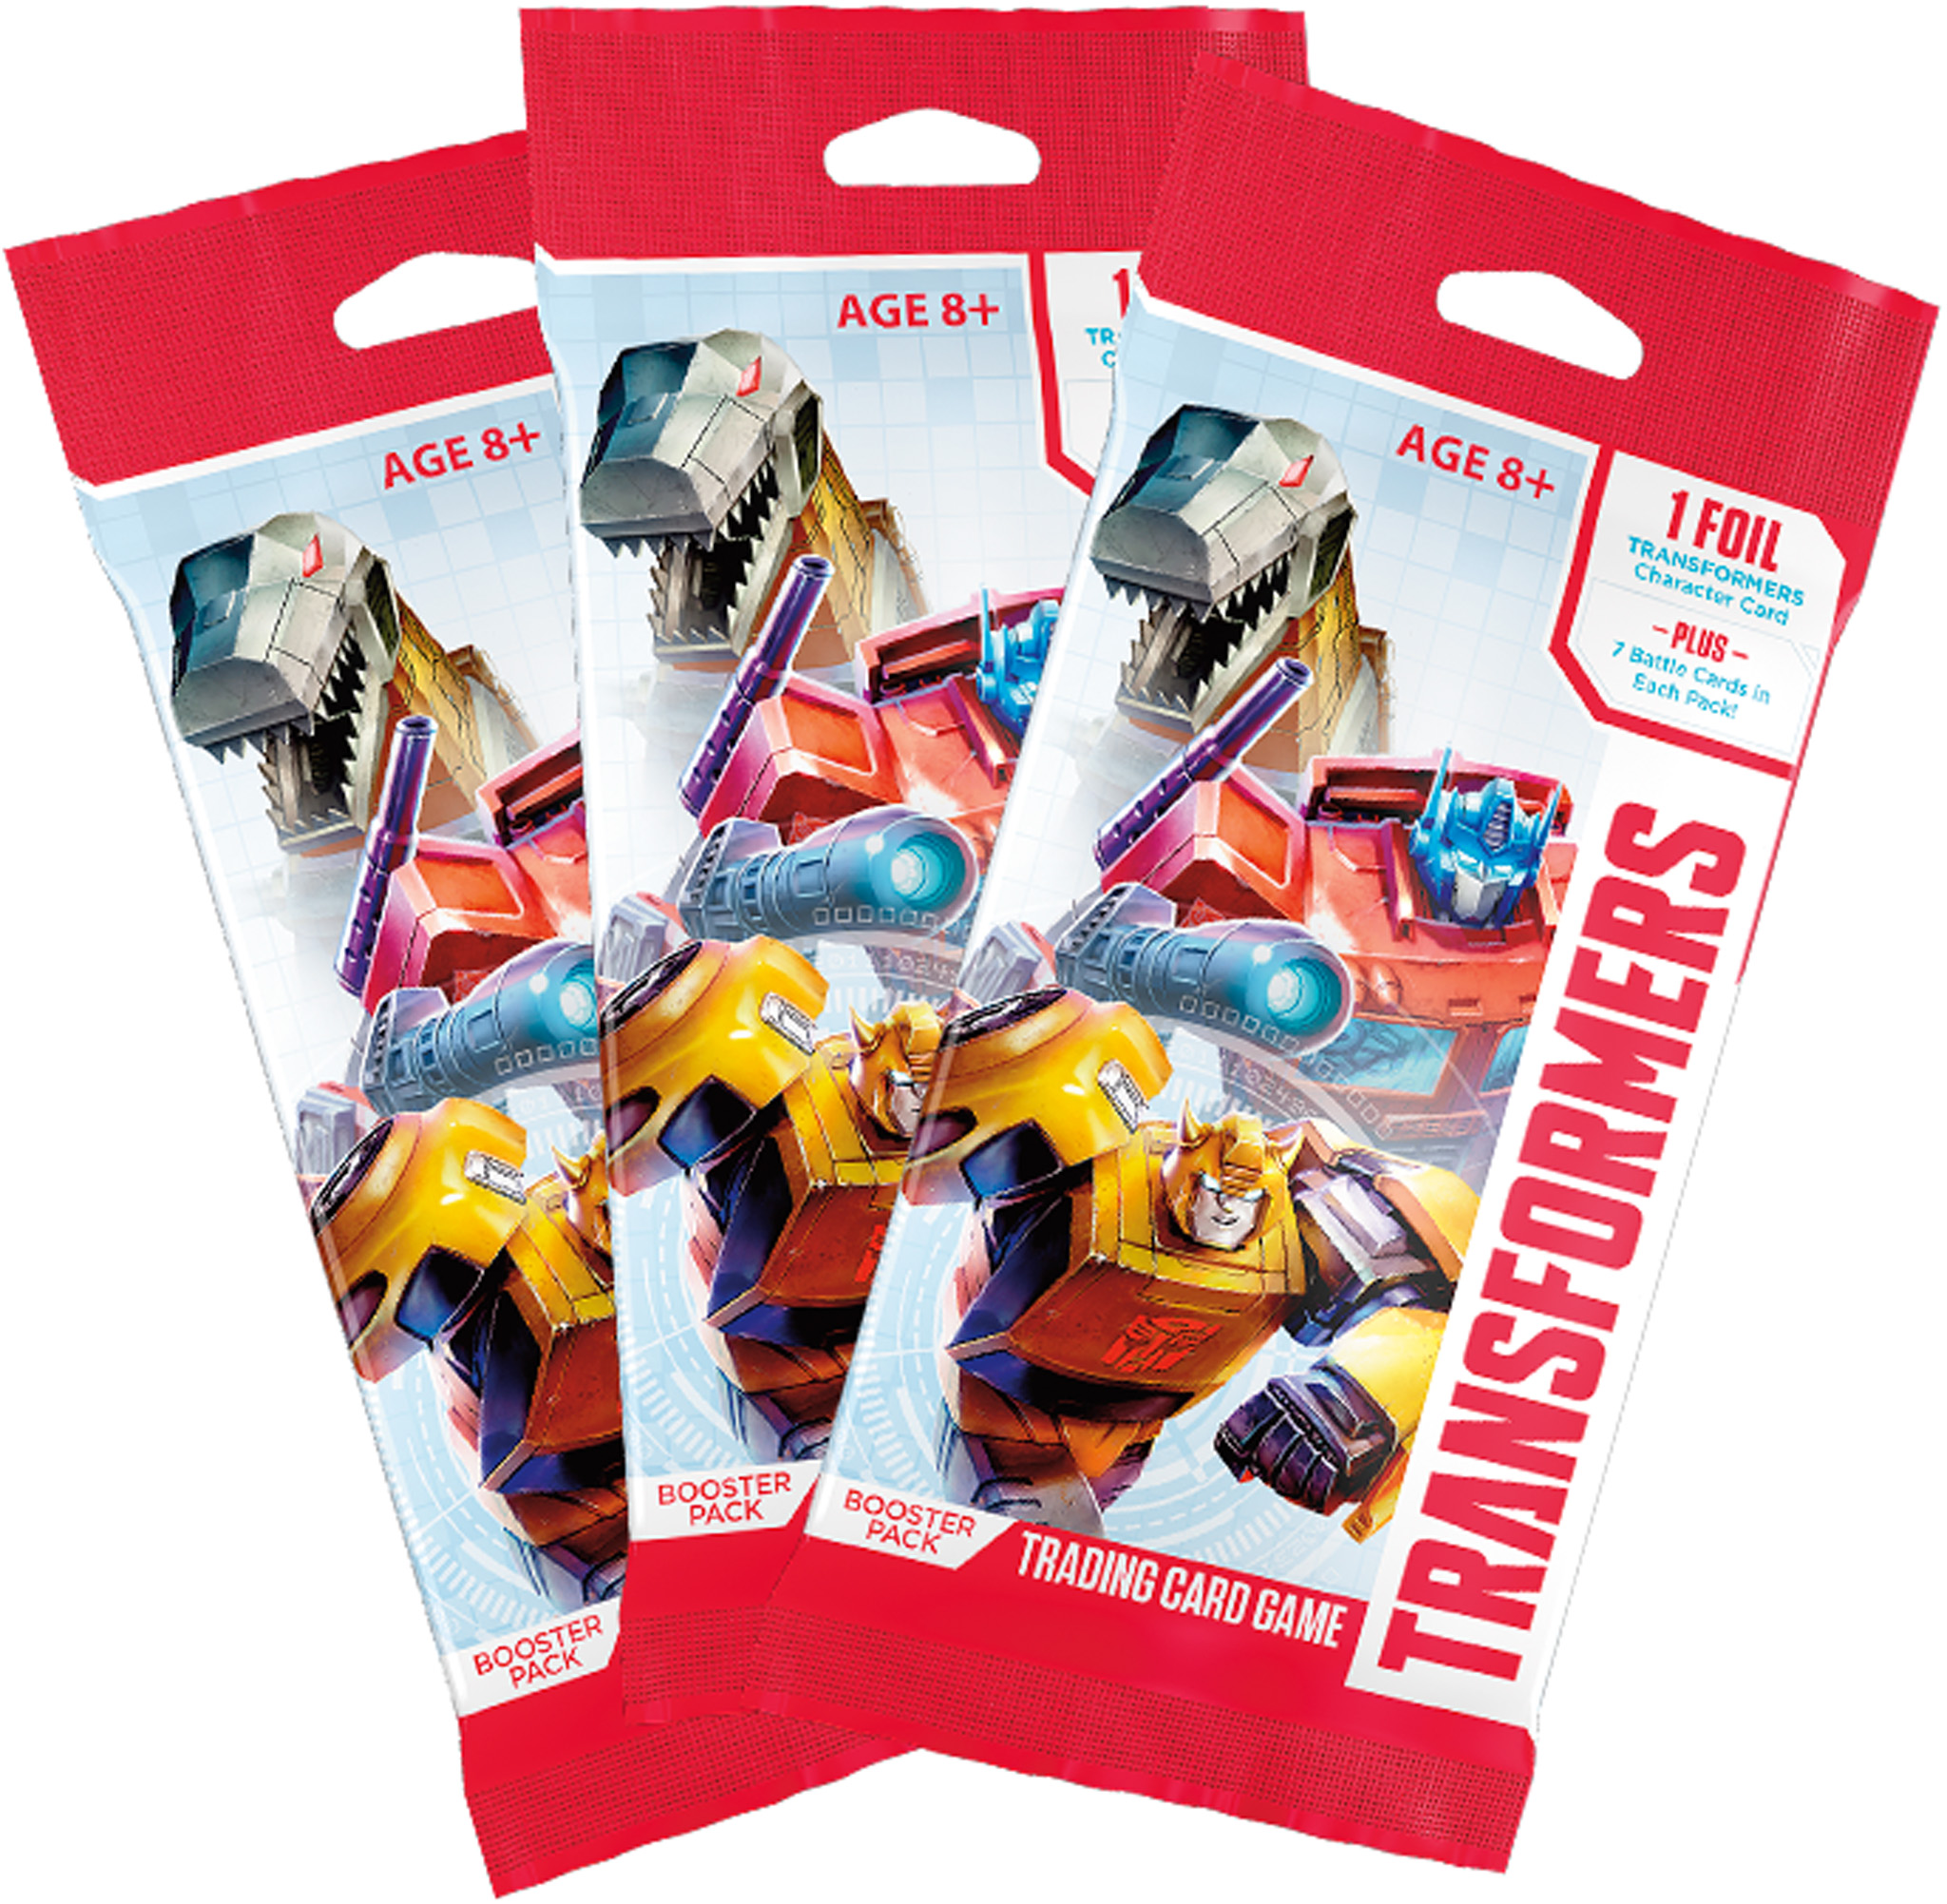 Transformers Trading Card Game From Wizards Of The Coast Details